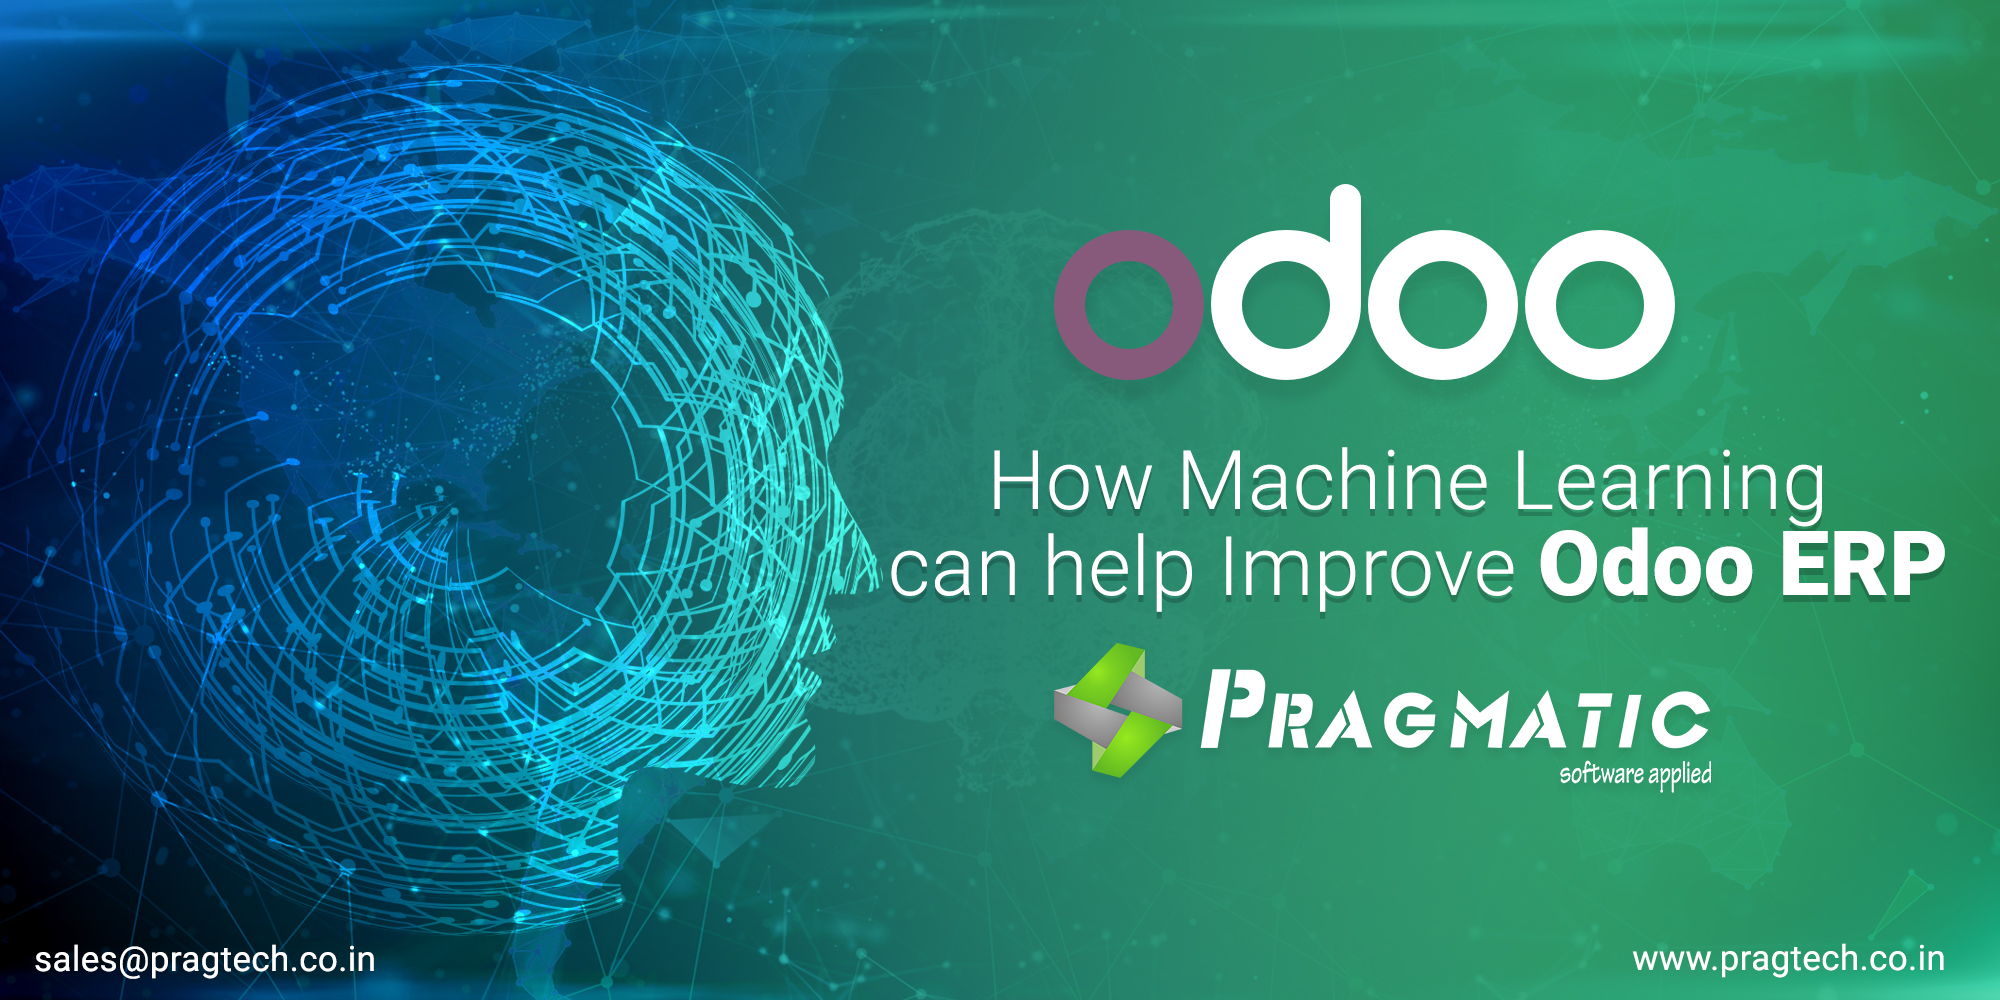 How Machine Learning can help Improve Odoo ERP